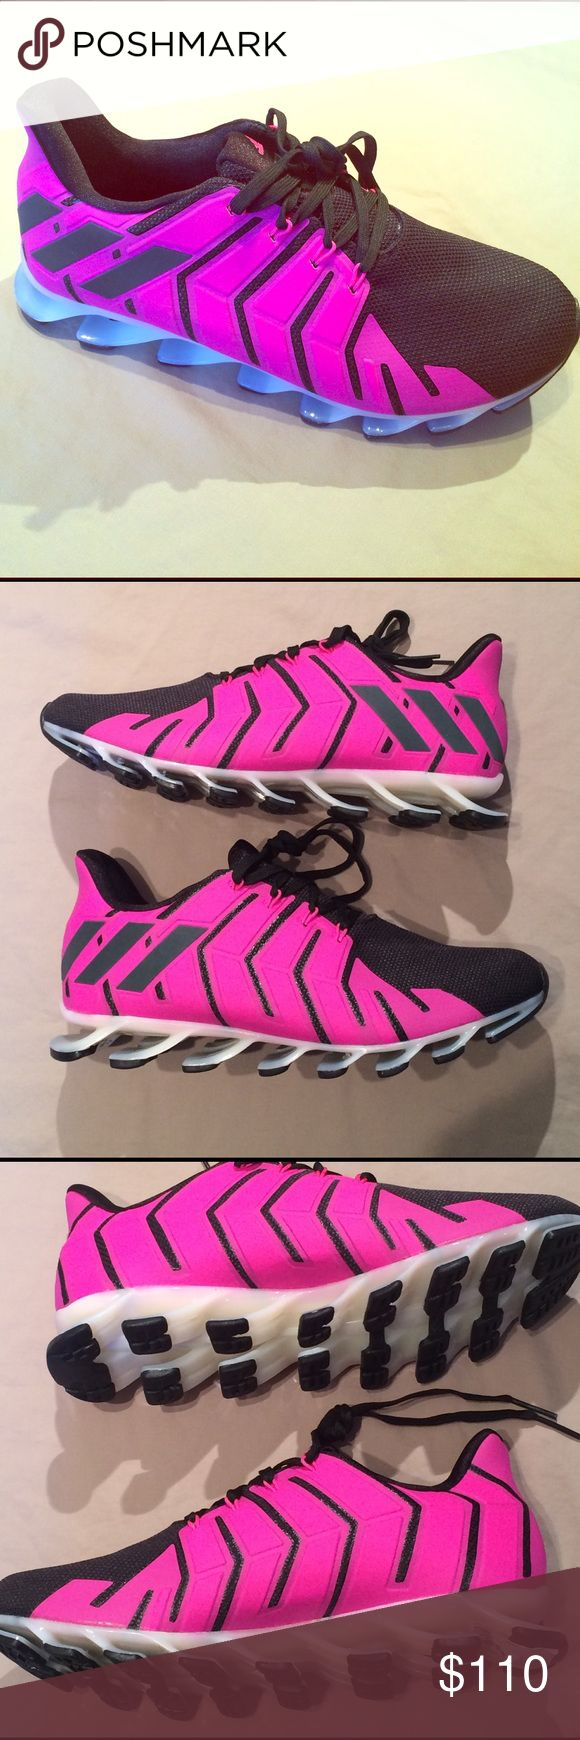 Women's adidas springblade pro size 9.5 Hot pink, black, and brand new- never worn. Adidas Springblade Pro, women's size 9.5, which have the springs under the entire shoe, not just Mid to back as the normal springblade. As always, 100% authentic, let me know if you'd like more pics. There is no original box, but the will be wrapped and double boxed to ship. Adidas Shoes Sneakers